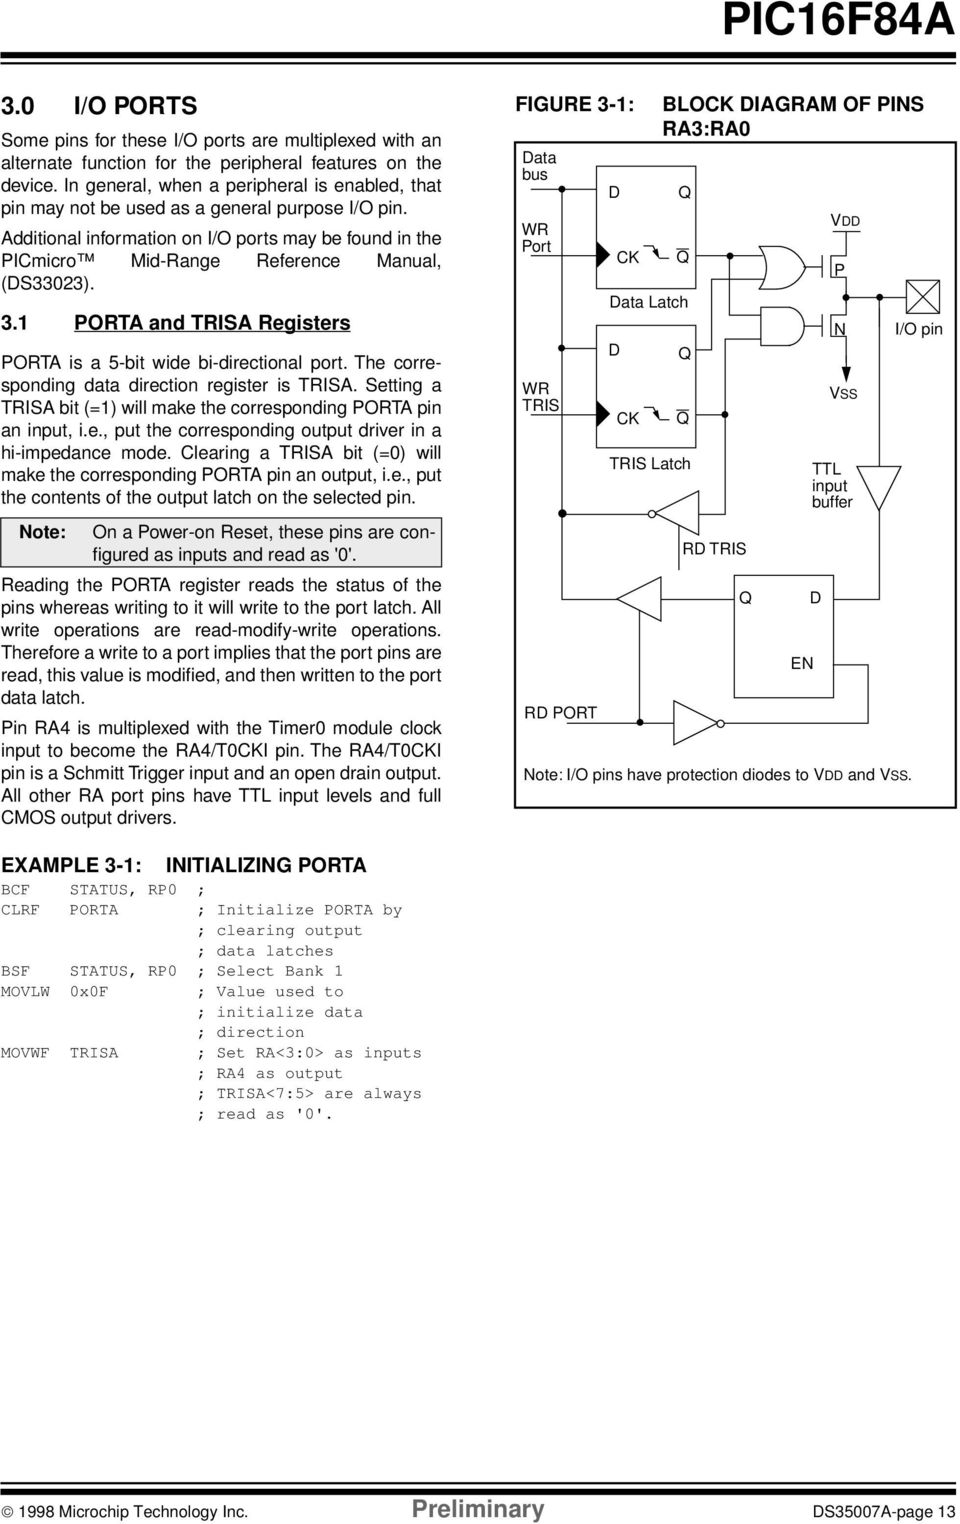 3. PORTA and TRISA Registers PORTA is a 5-bit wide bi-directional port. The corresponding data direction register is TRISA. Setting a TRISA bit (=) will make the corresponding PORTA pin an input, i.e., put the corresponding output driver in a hi-impedance mode.